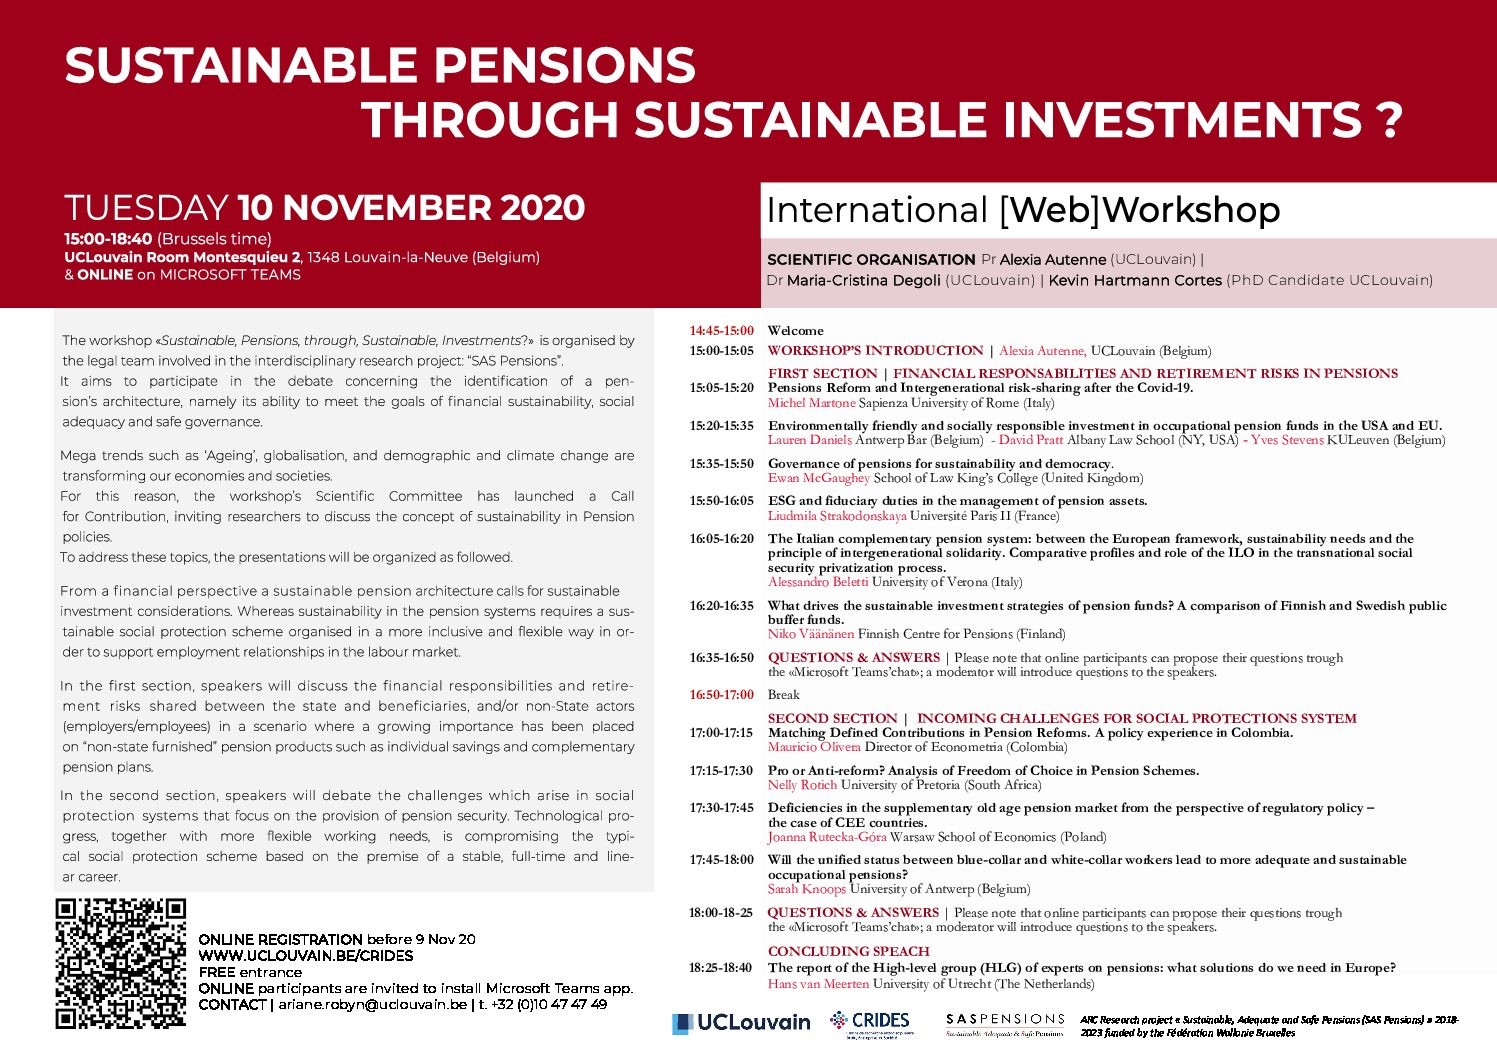 Web Workshop – Sustainable Pensions through Sustainable Investments?